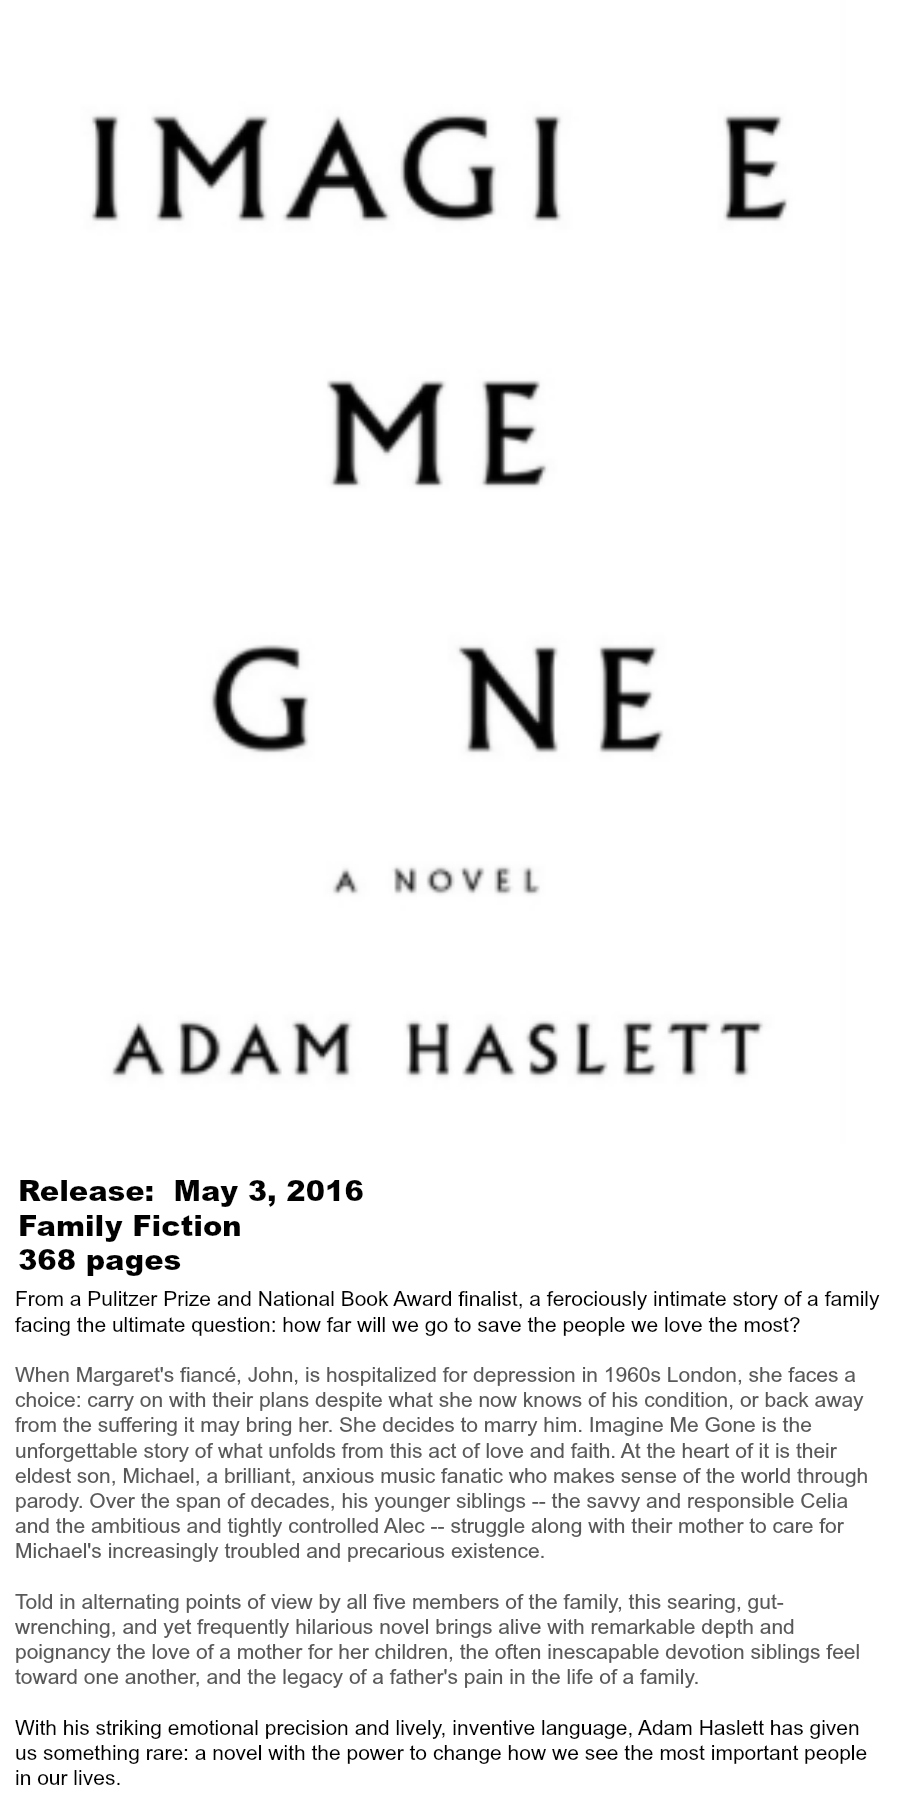 Must-read Books of Summer 2016 - Imagine Me Gone Adam Haslett